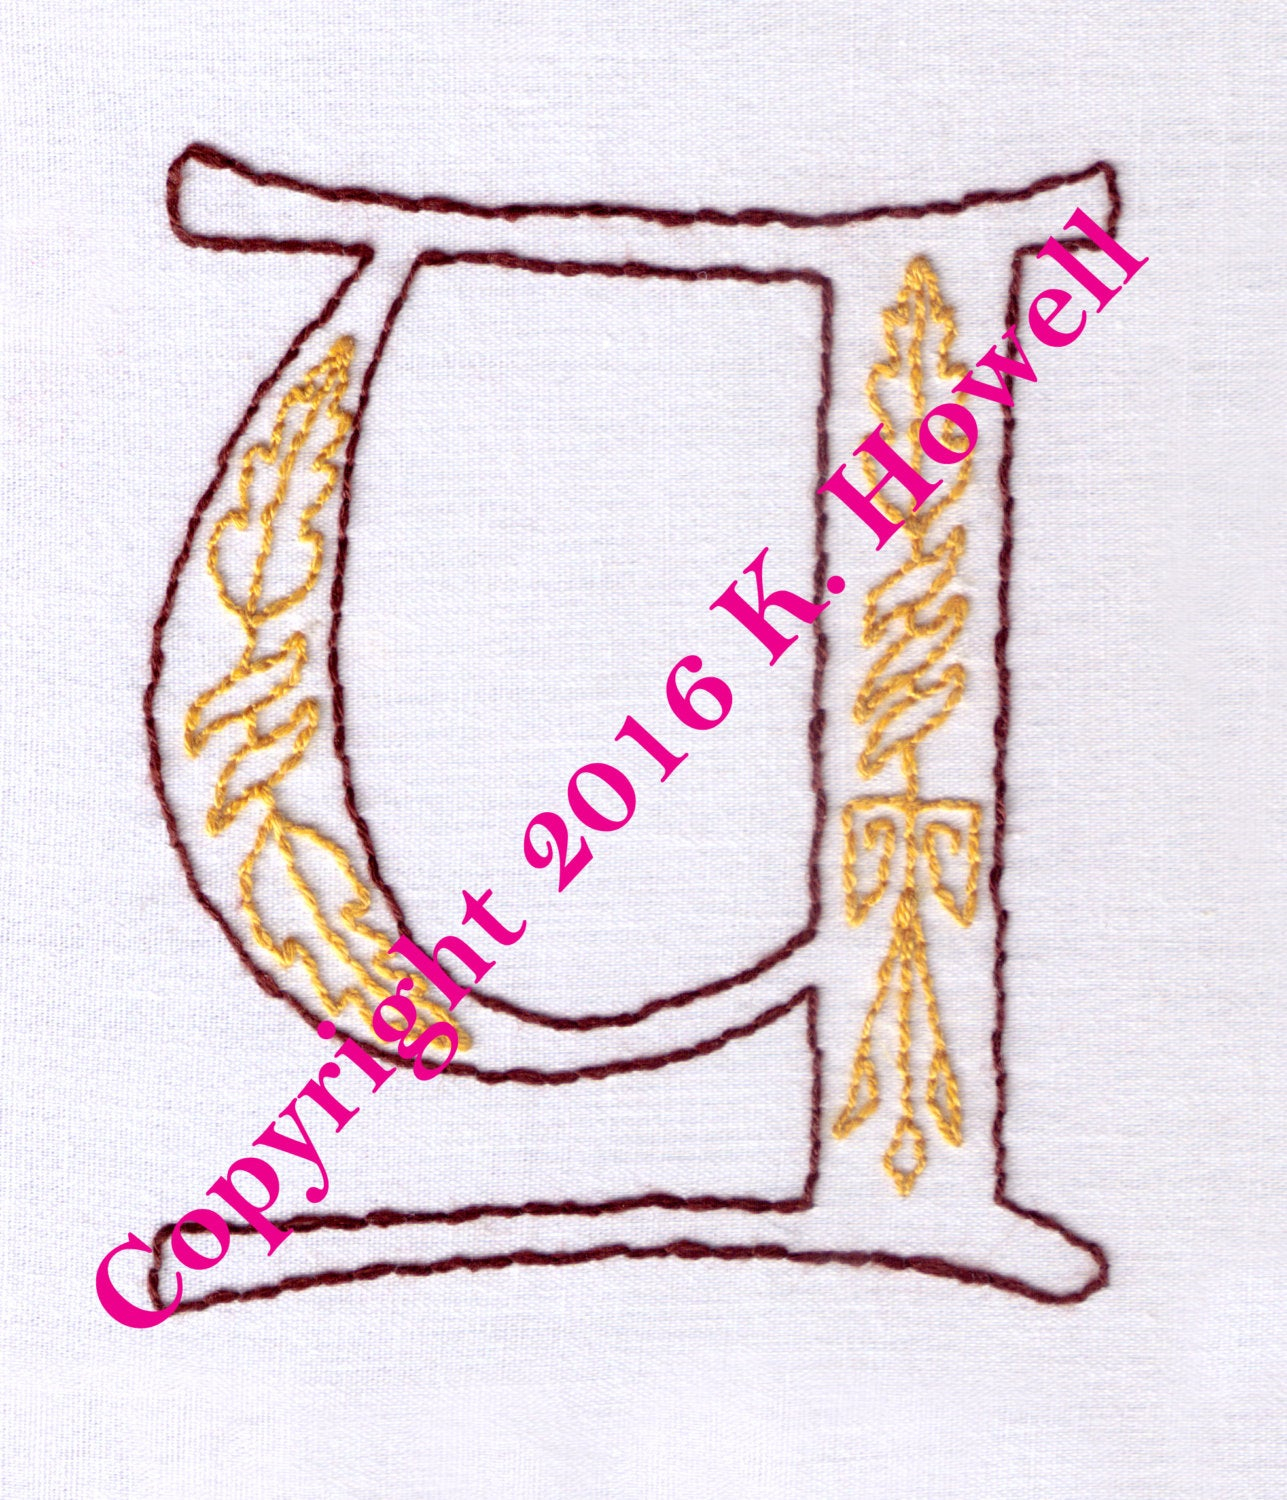 Hand Embroidery Alphabet Patterns Free Y Hand Embroidery Pattern Medieval Letter Monogram Font Illuminated Manuscript Pdf